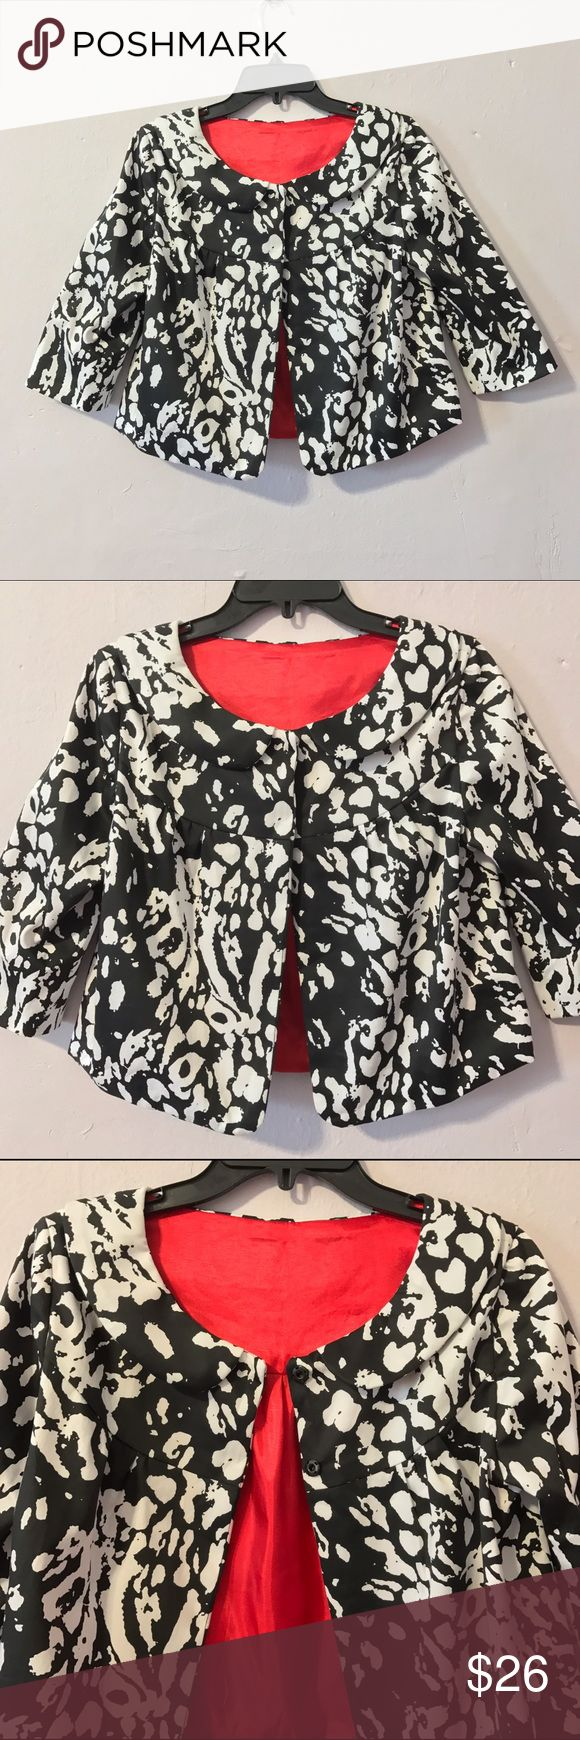 Cheetah print bolero jacket contrast lining blazer Cute black and white cheetah print bolero jacket with red contrast lining. Peter Pan collar; 3/4 sleeves; opens and closes with two large snaps; boxy/oversized fit. Great for work or lunch with the ladies- looks very chic with an all black fitted outfit. Best fits standard size Small. Never worn and in perfect condition. Cheetah print fabric is cotton with slight stretch. Jackets & Coats Blazers